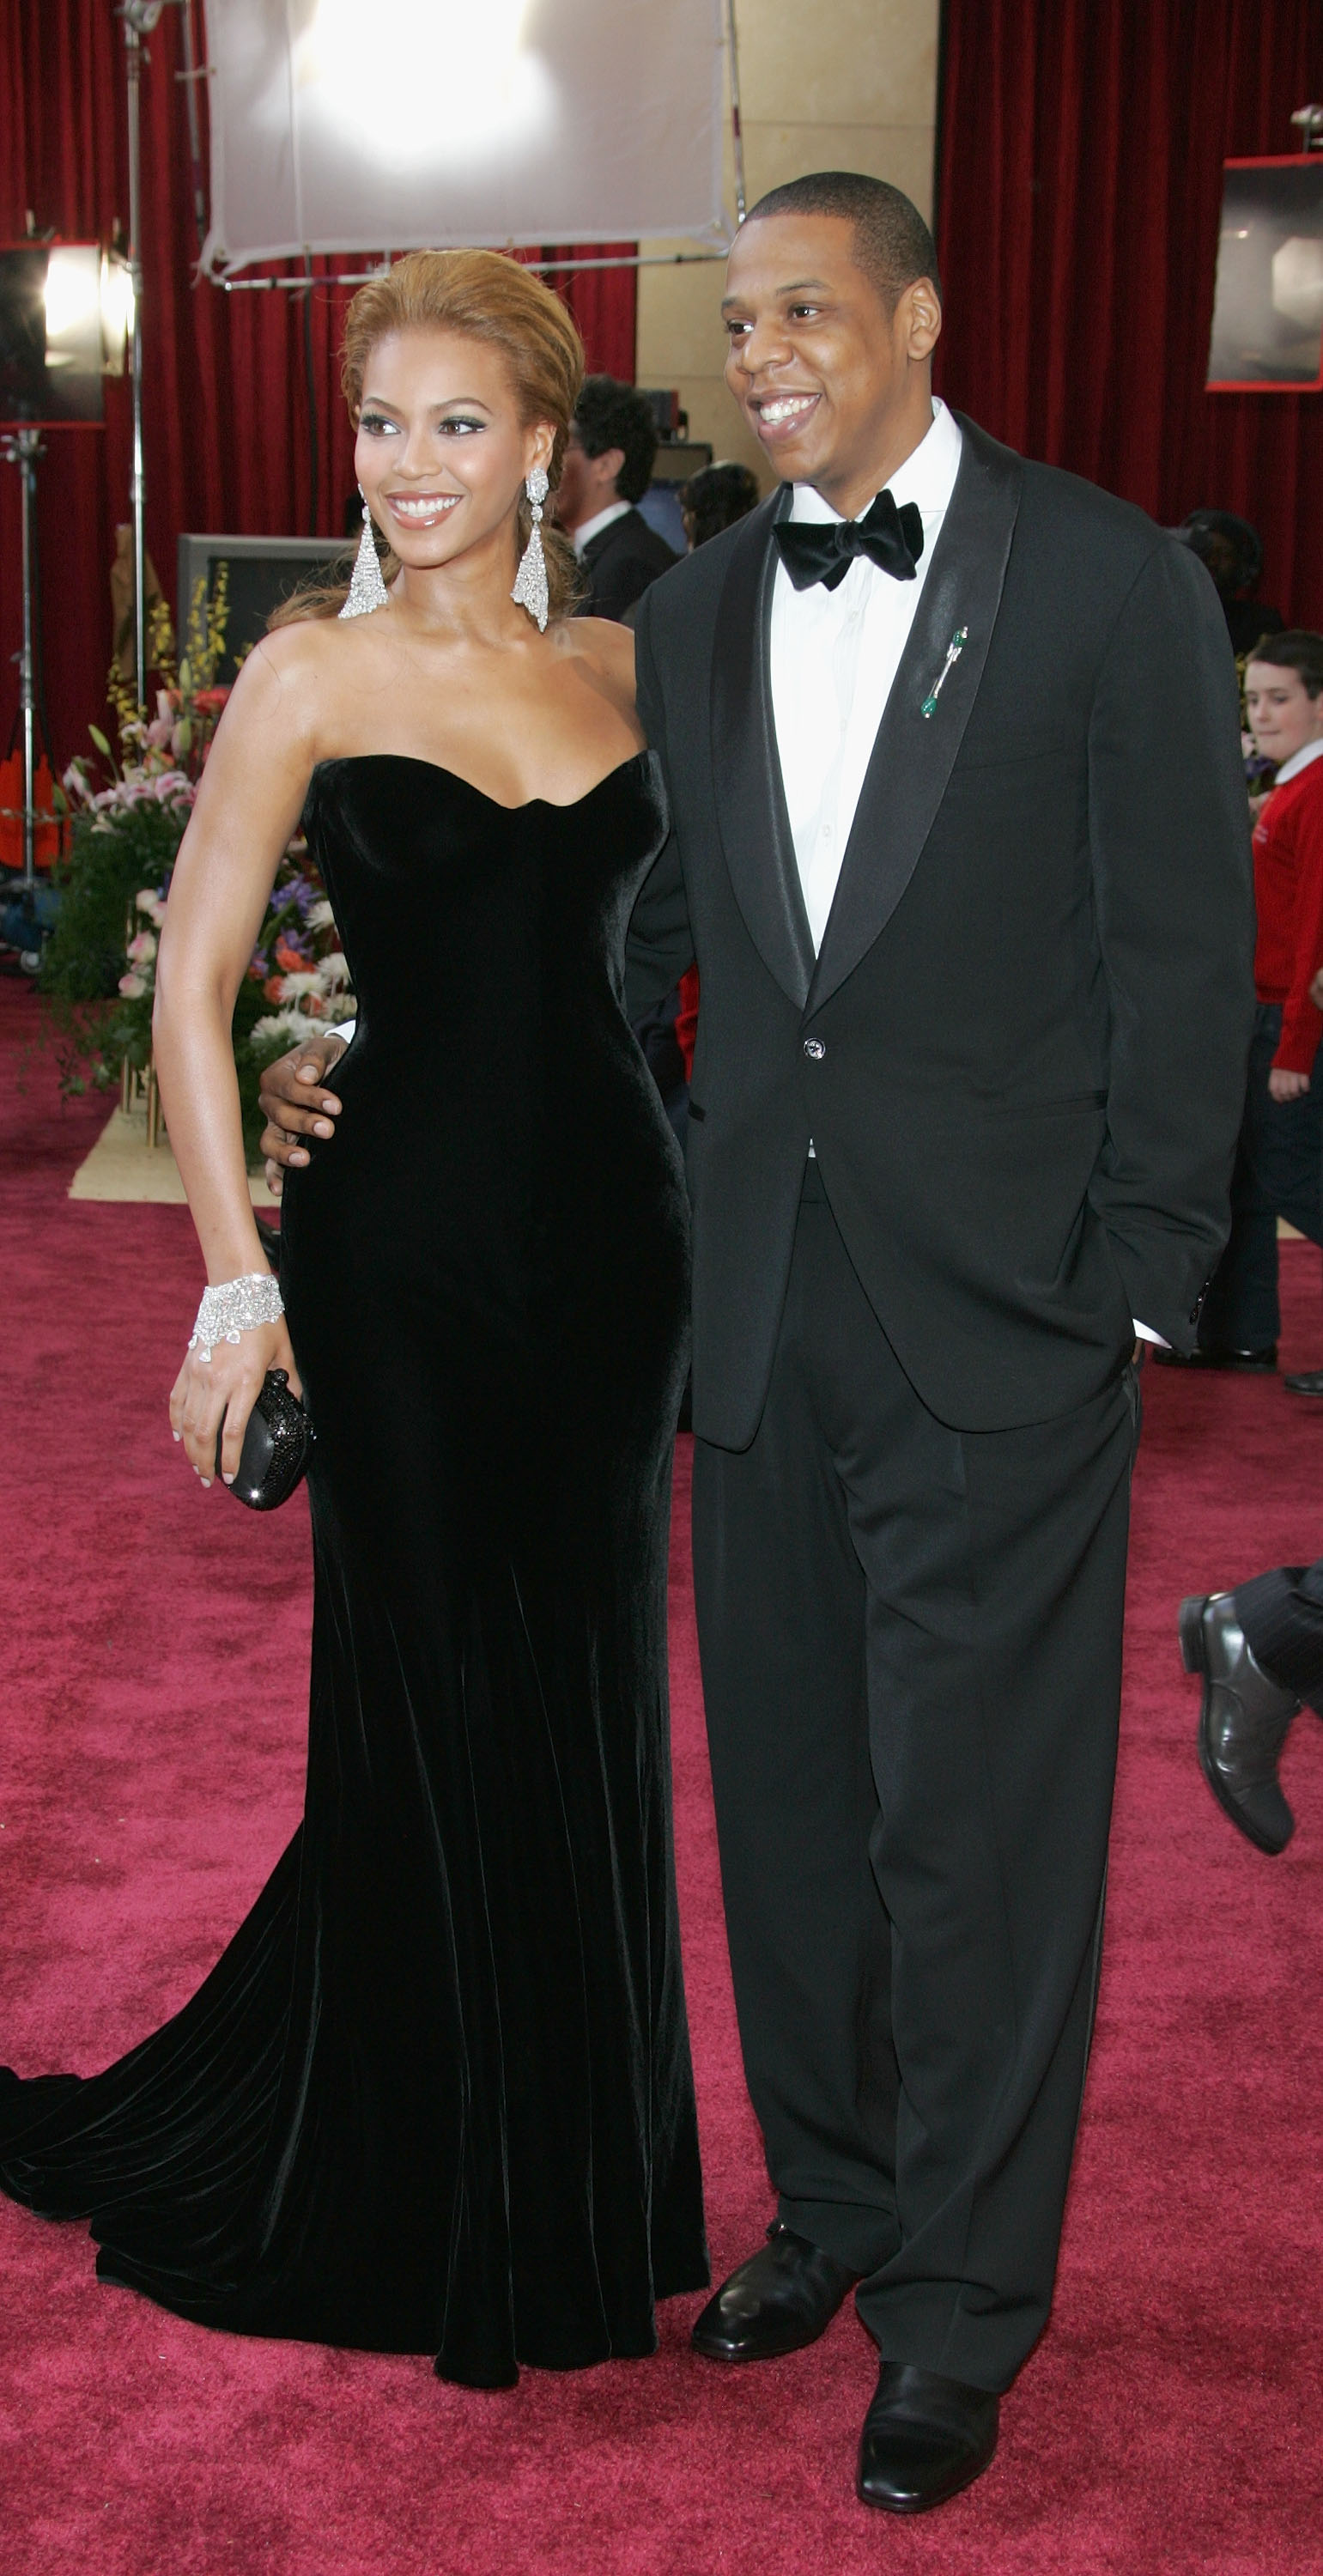 Singer Beyonce Knowles (L) and Def Jam President Jay-Z arrive at the 77th Annual Academy Awards on February 27, 2005. (Photo by Vince Bucci/Getty Images)